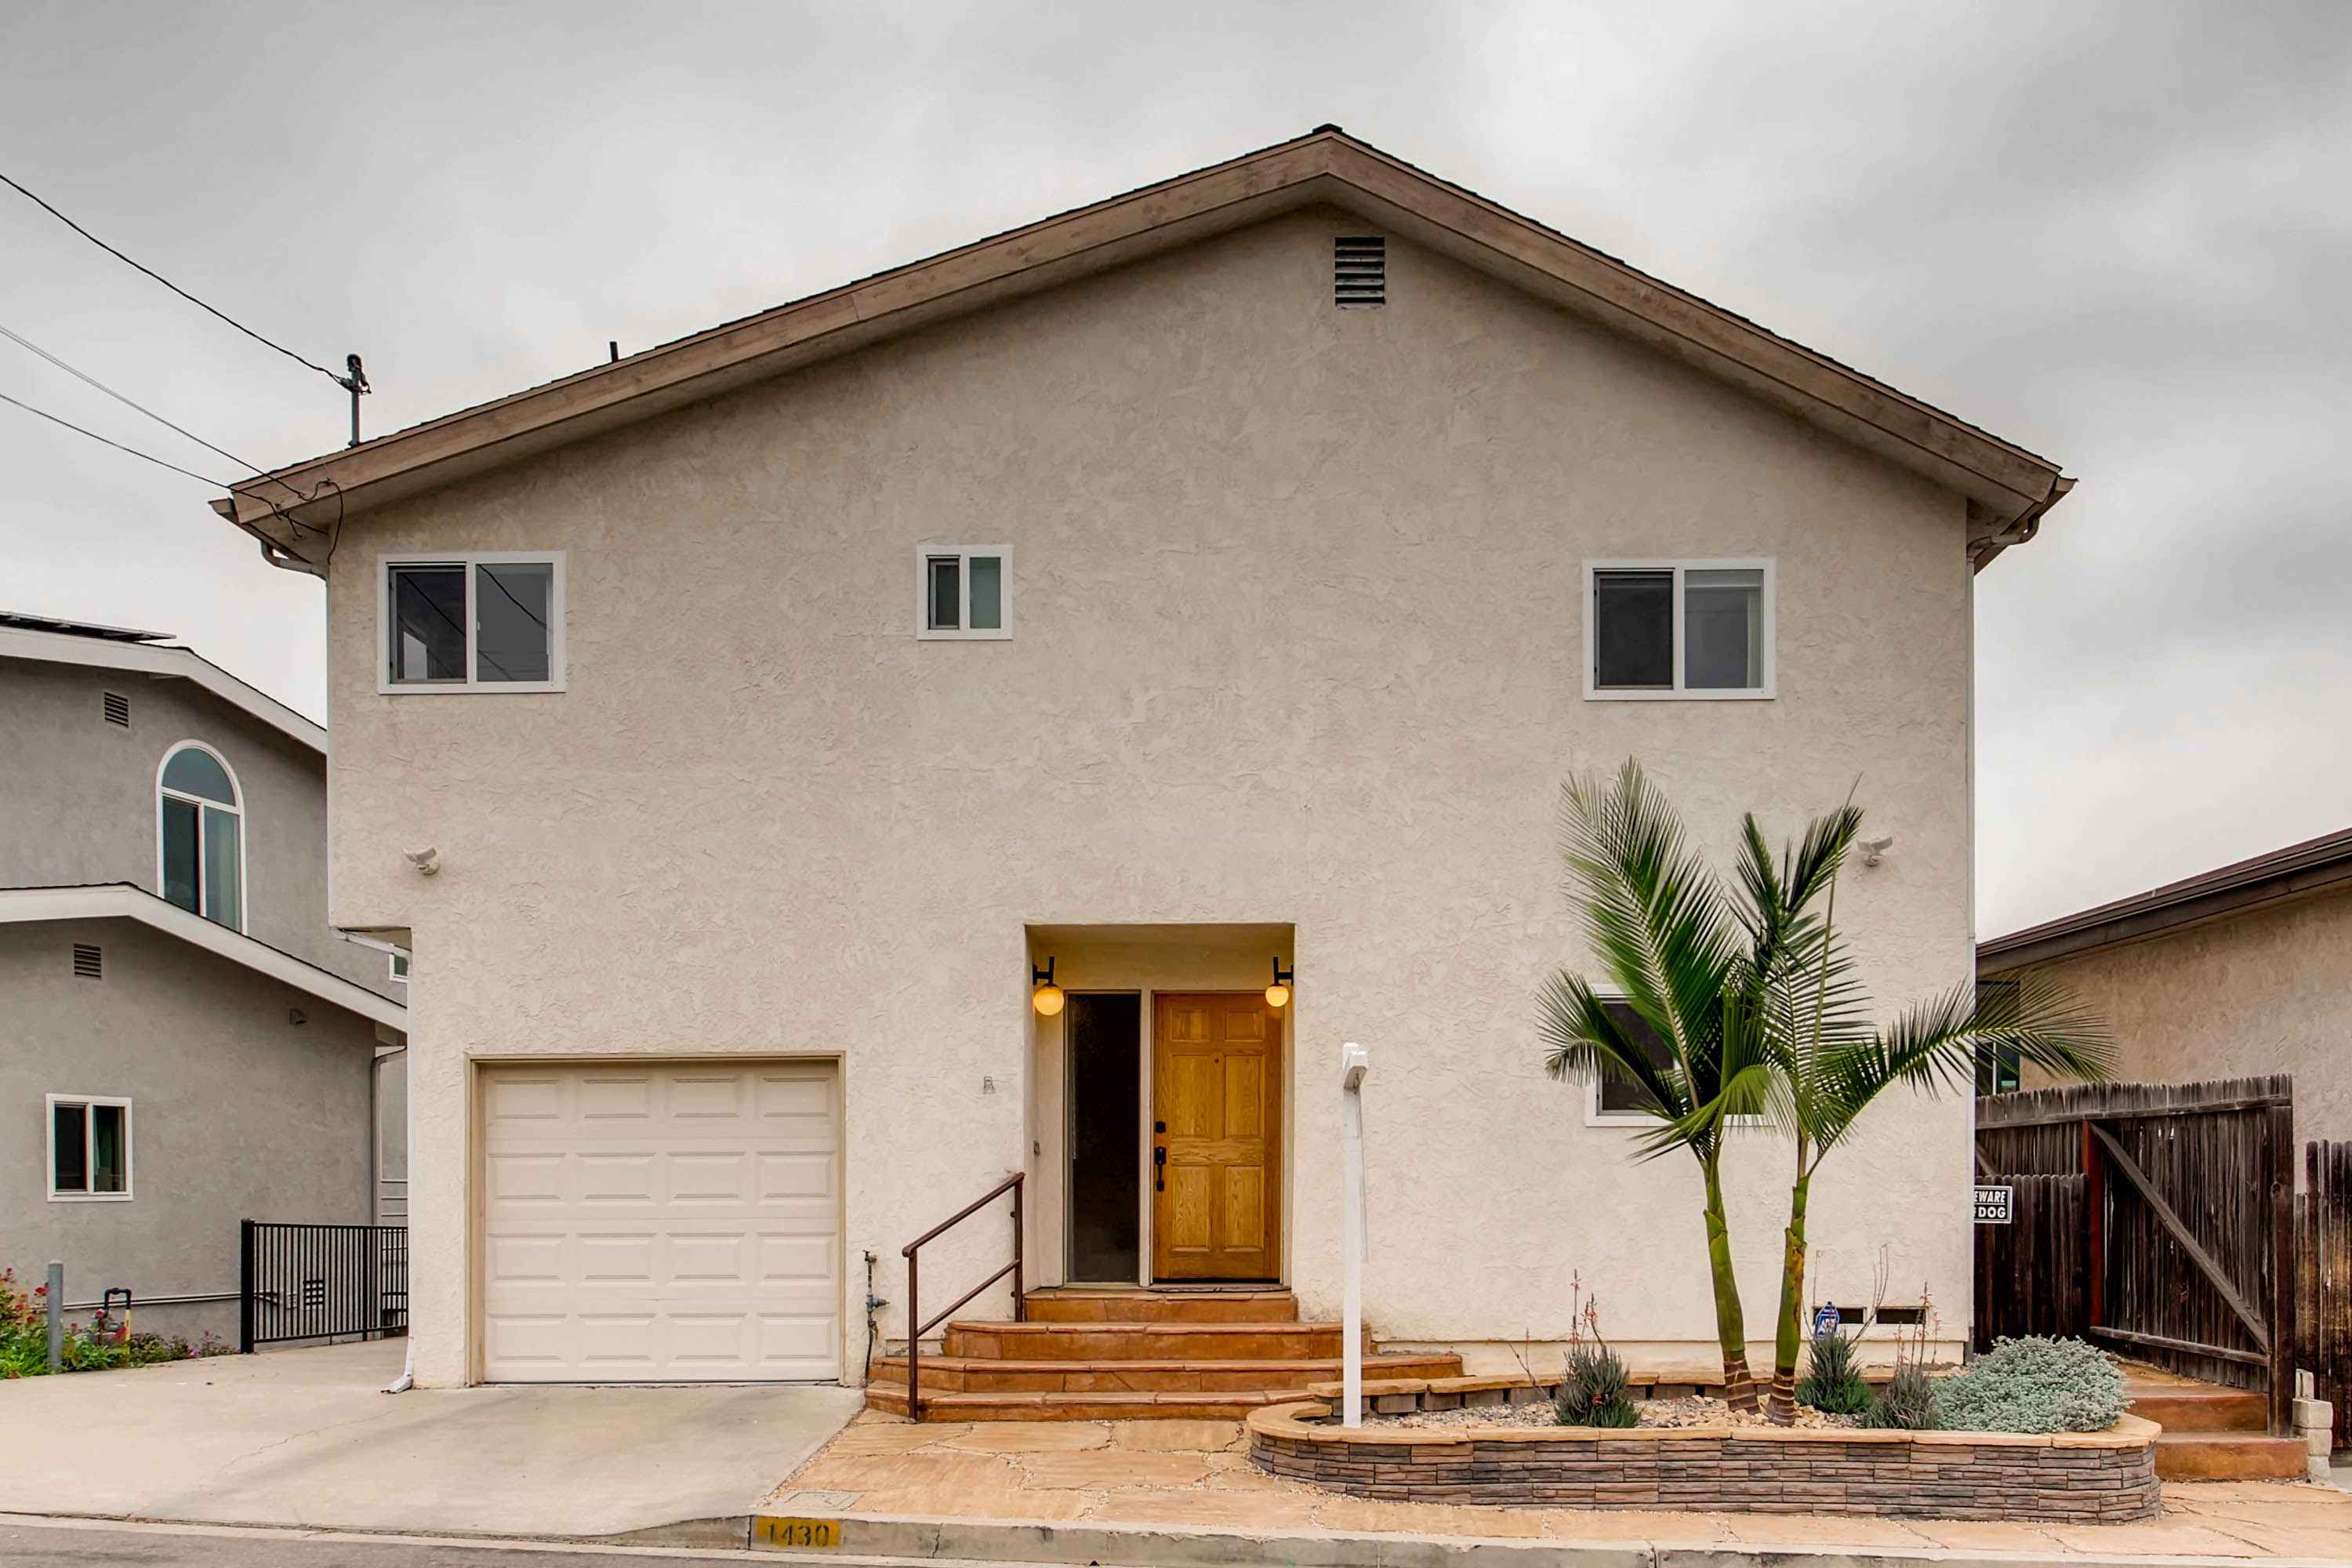 1430 Monitor Road, San Diego, CA 92110 Image #1